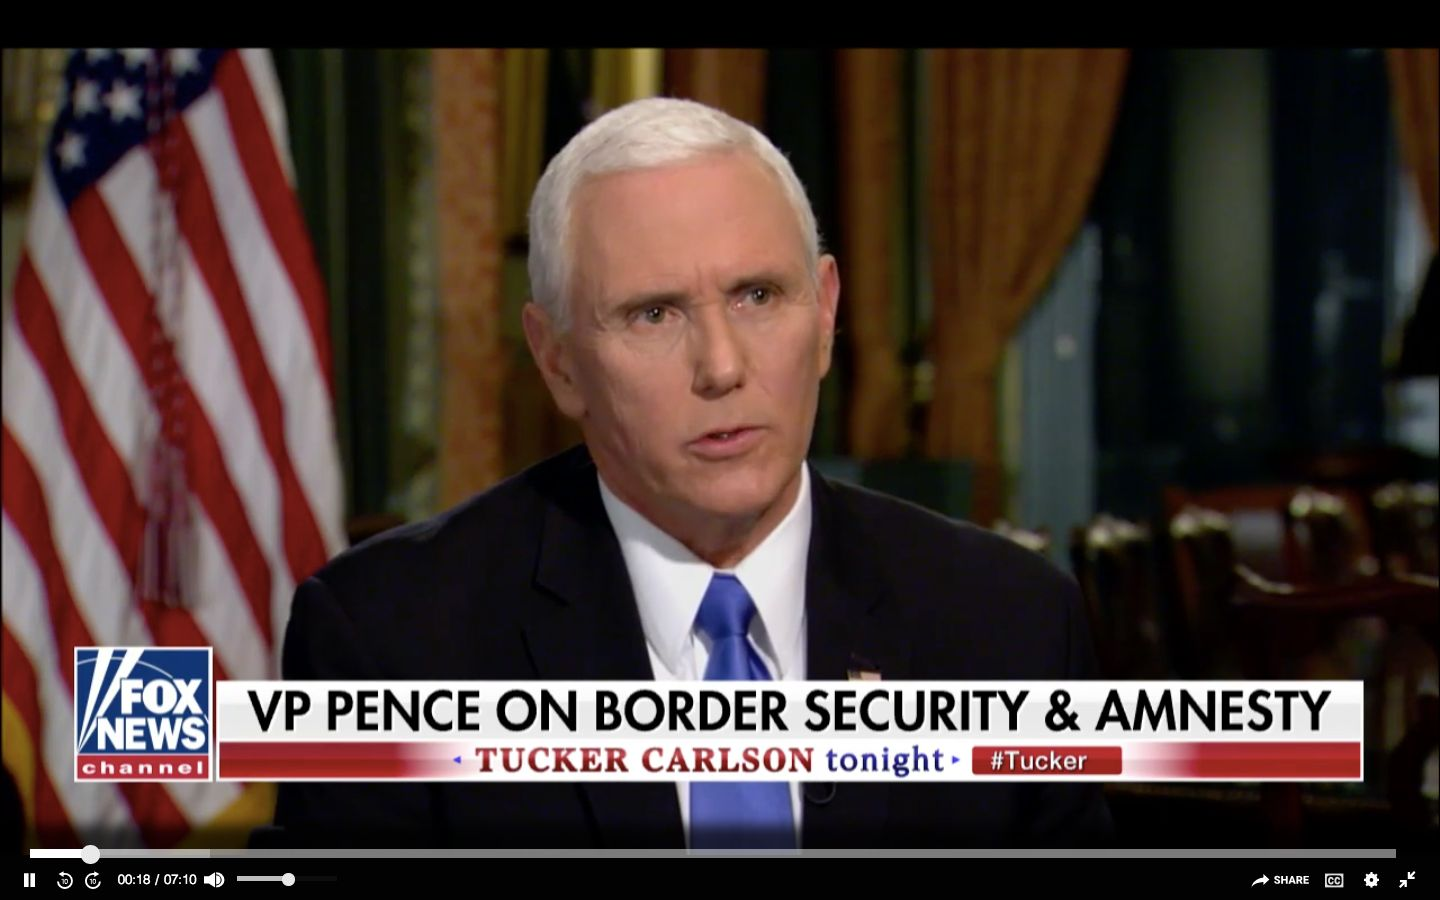 Mike Pence on Tucker Carlson